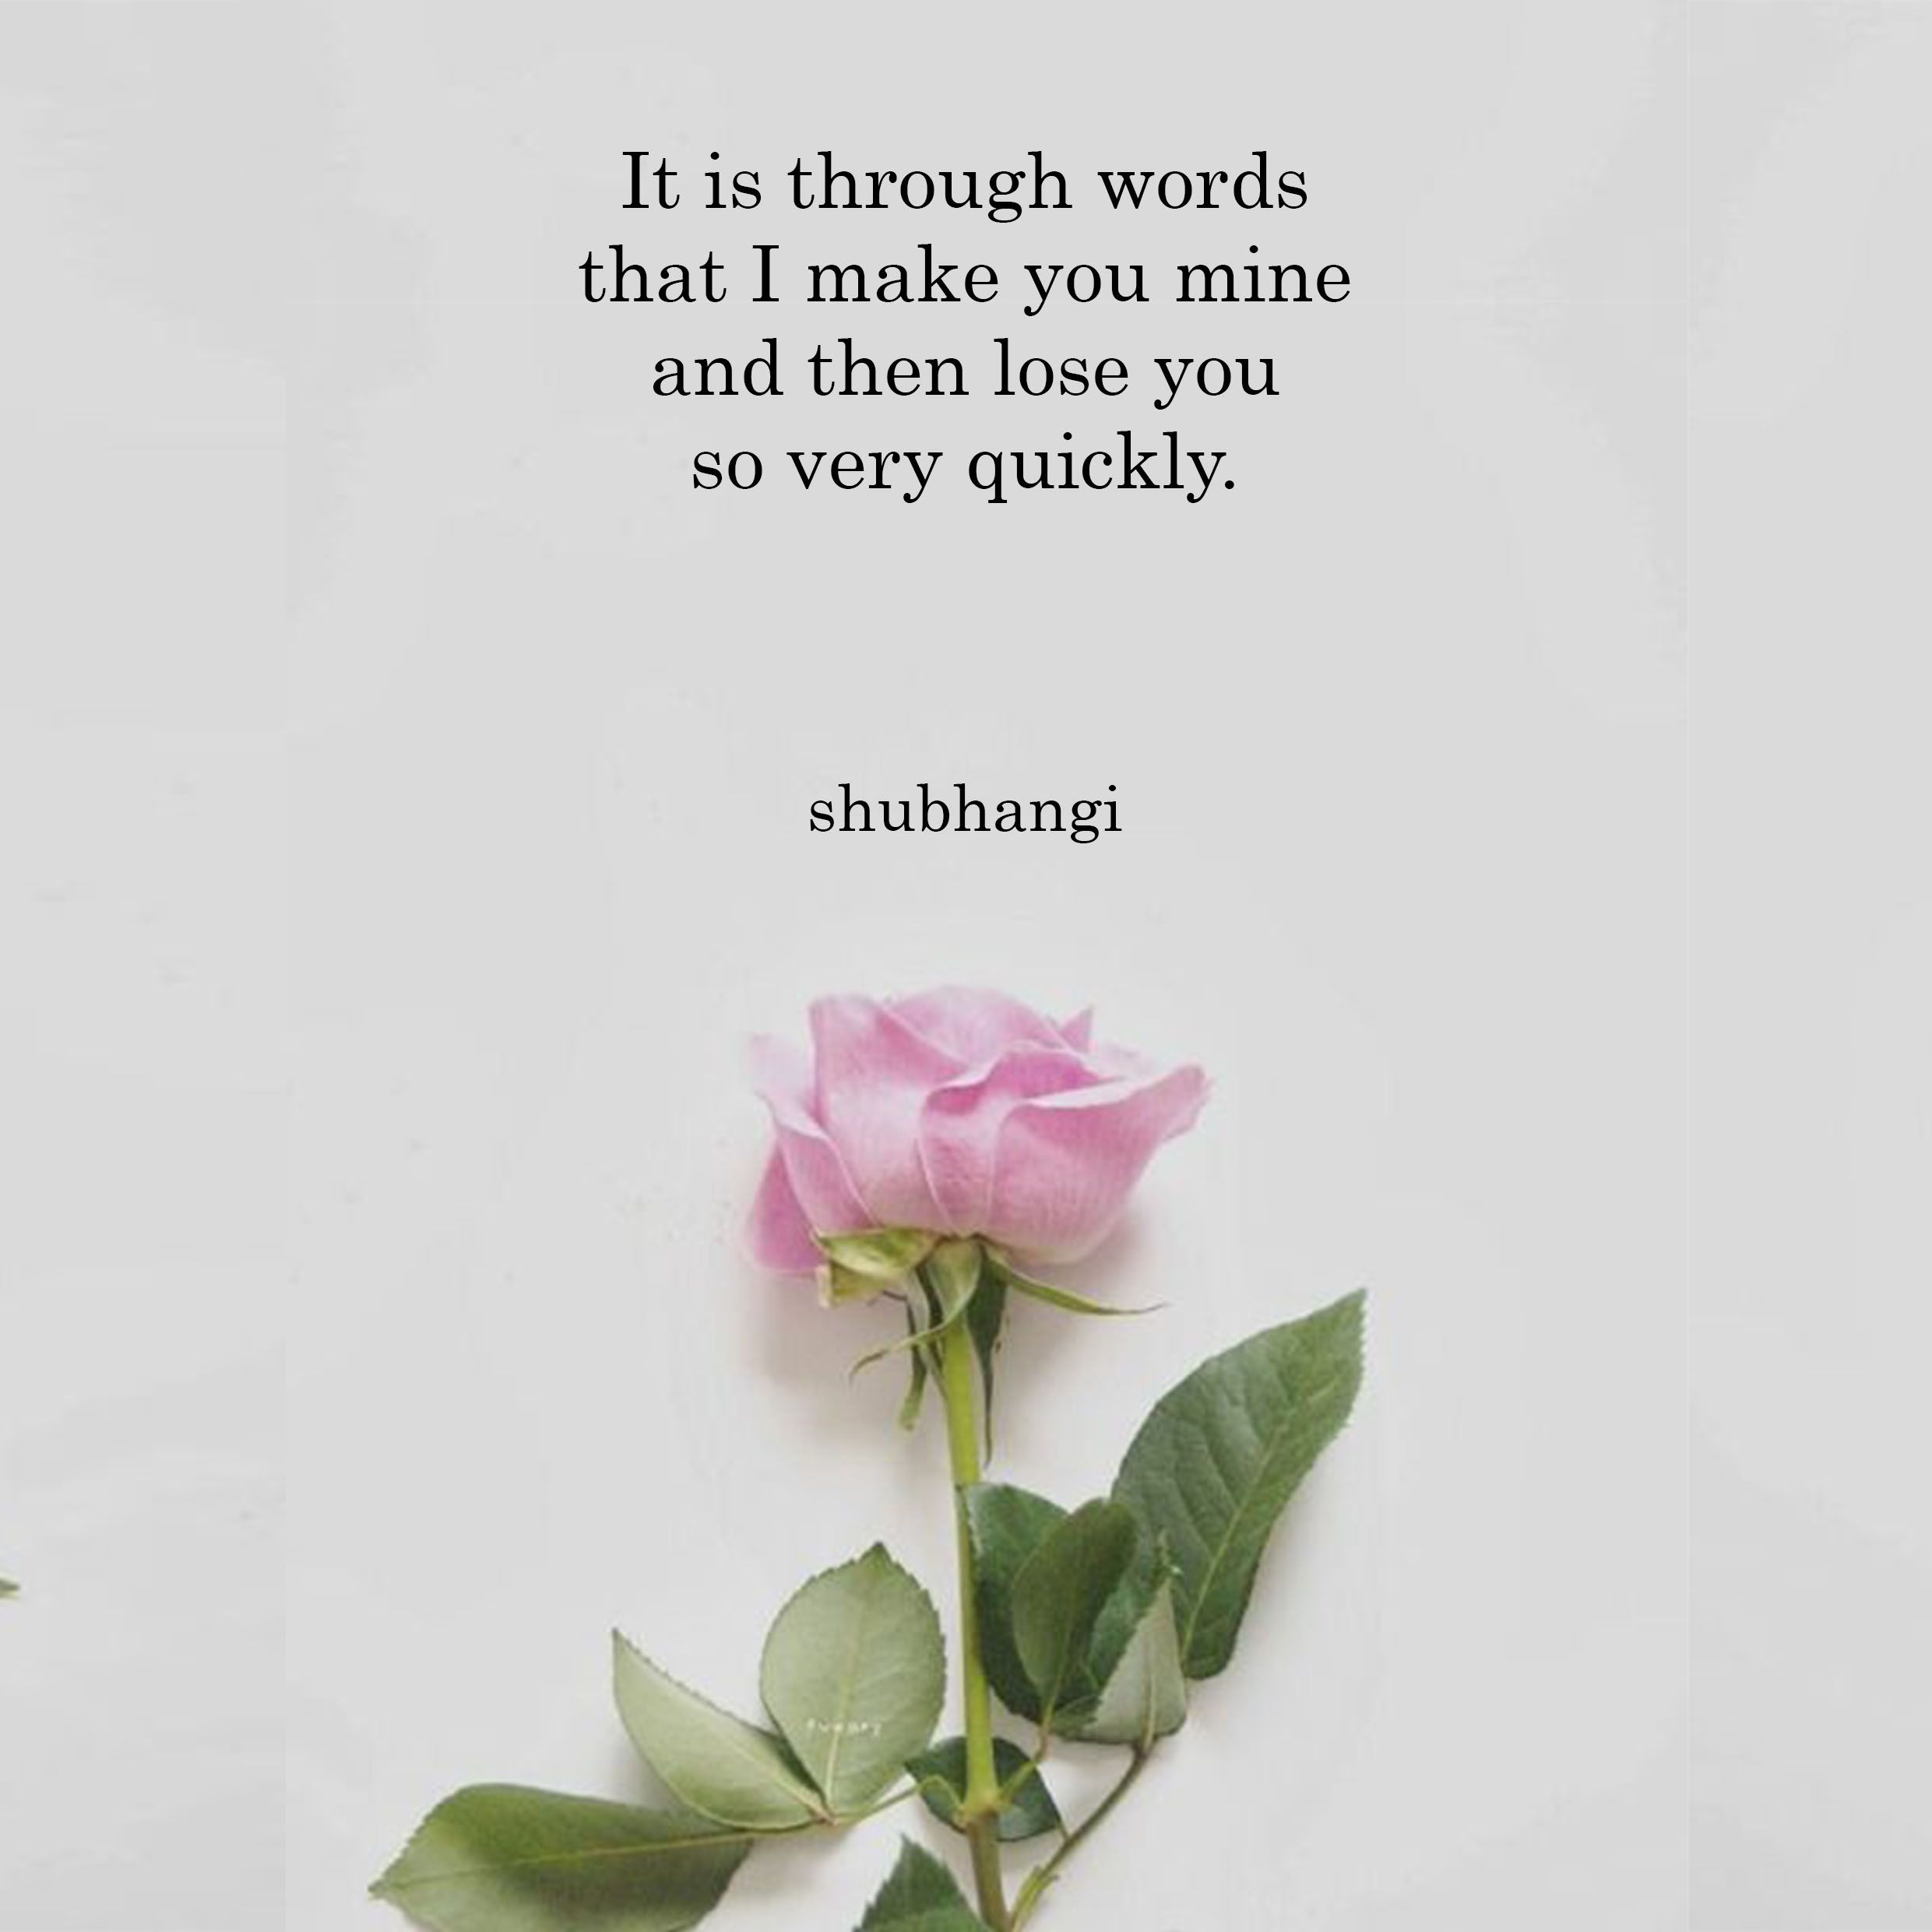 Follow Words Entwined On Instagram For Daily Poetry Poem Poetry Poems Quotes Love Lovequotes Wr Simple Quotes Birthday In Heaven Quotes Literary Quotes